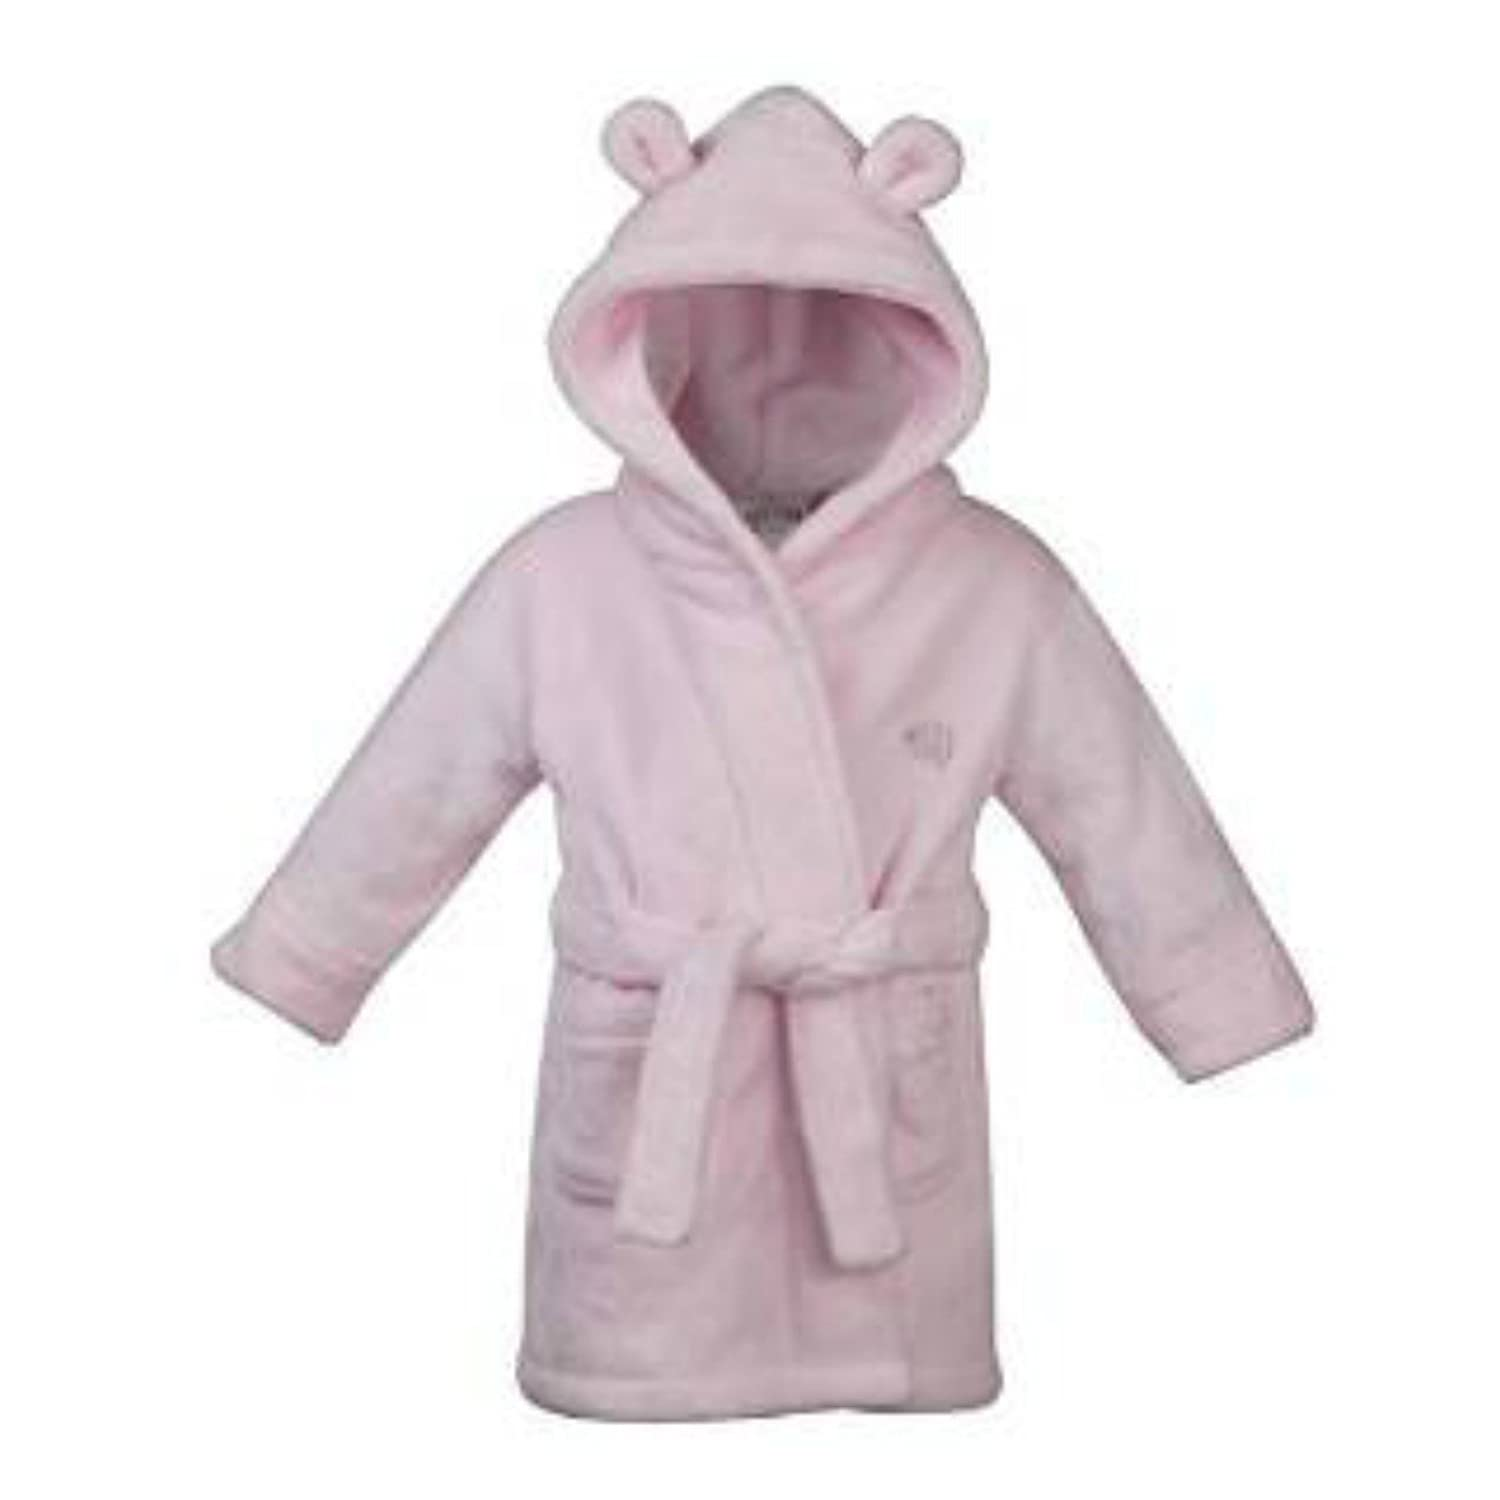 Beautiful Baby dressing Gown in Either Pink or Blue Soft Fluffy Fleece